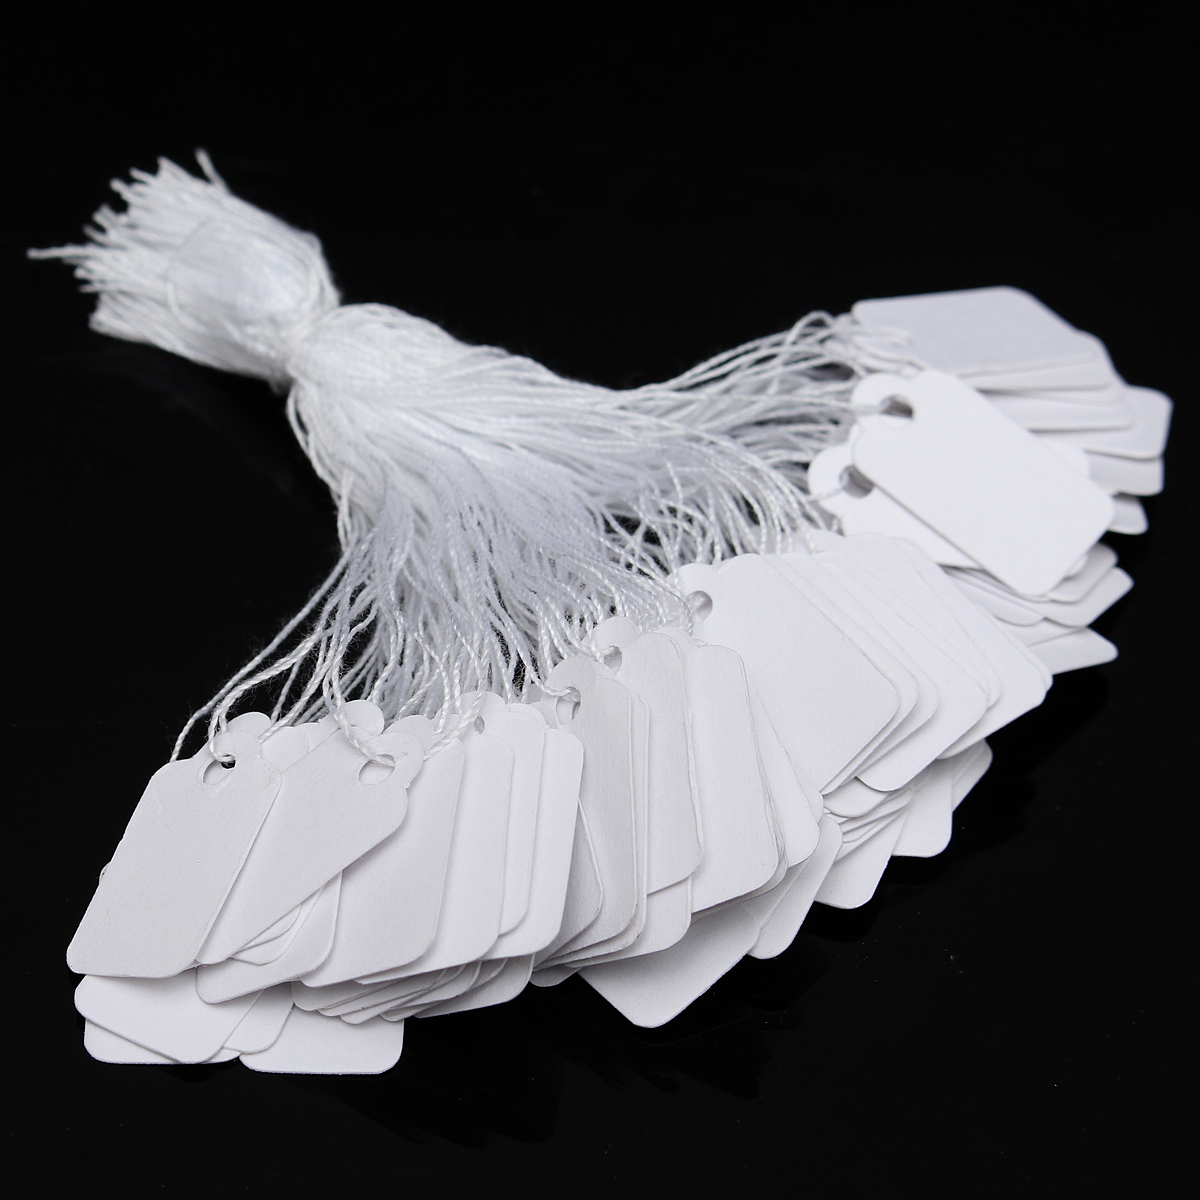 500 Pack Mini Price Tags, White Label Tie String Strung Jewelry Watch Display Merchandise Price Tags